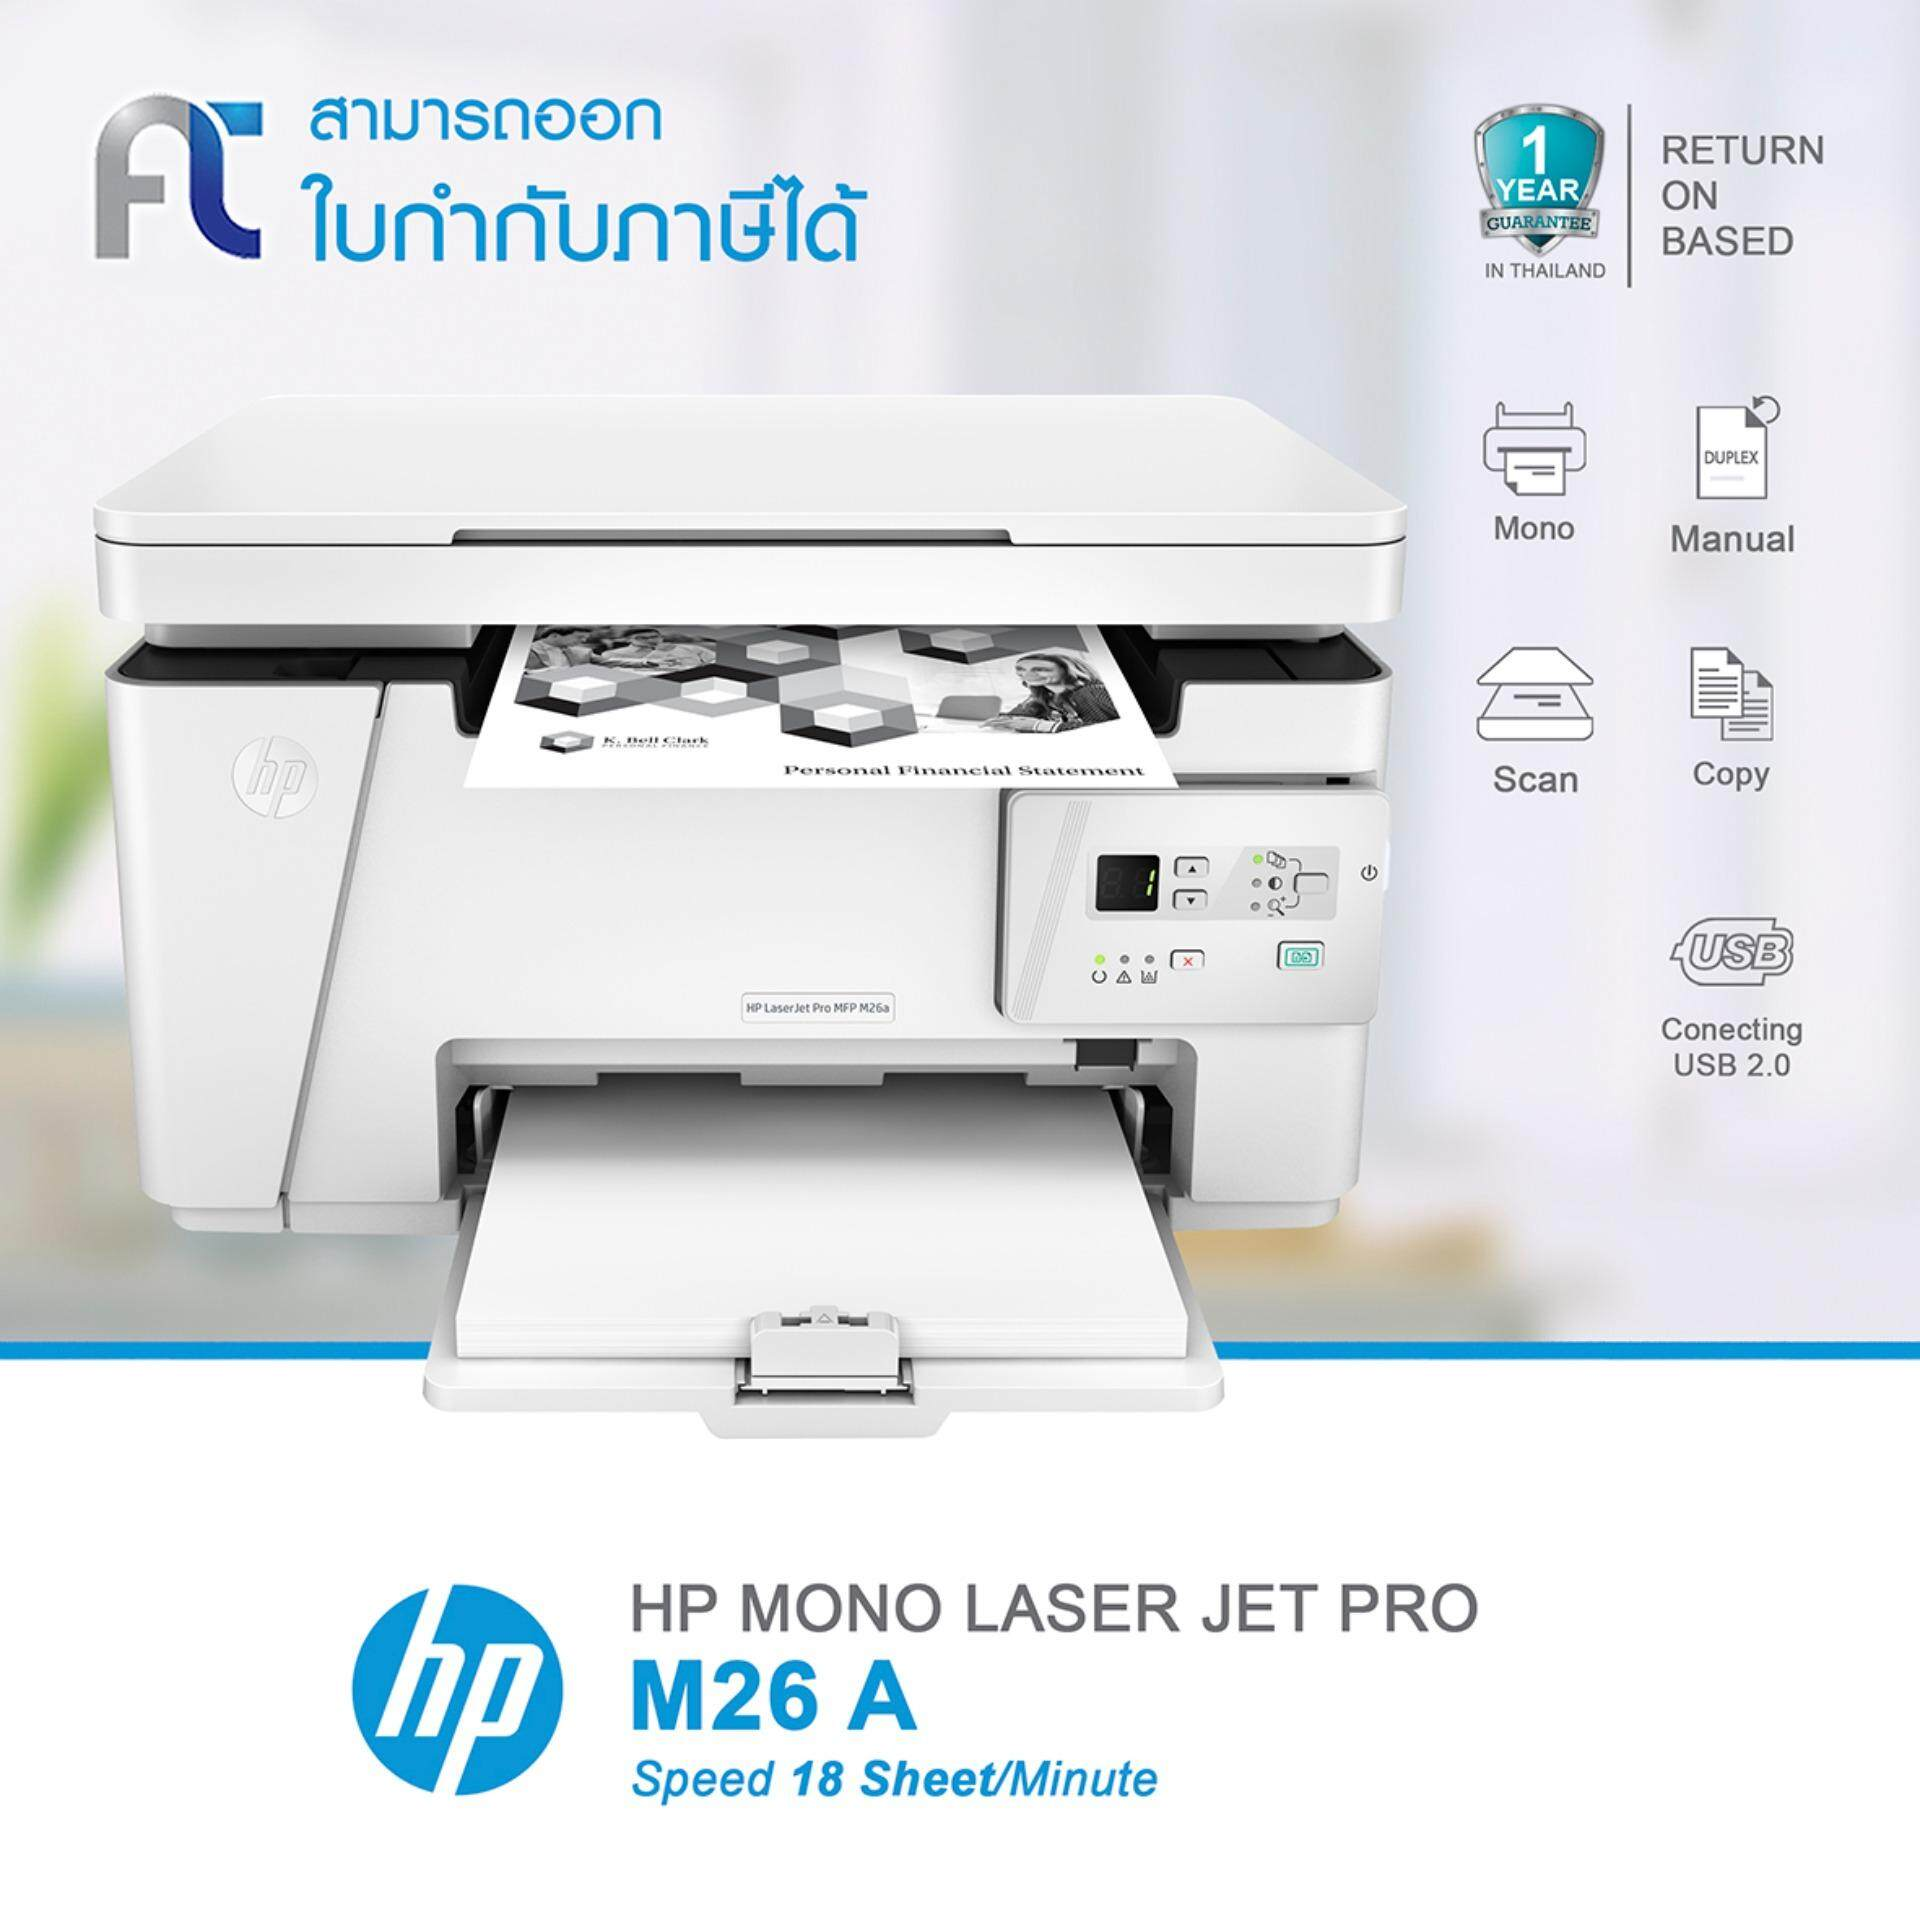 ขาย ซื้อ ออนไลน์ 1 Year Warranty Hp Laserjet Pro Mfp M26A Printer Print Copy Scan T0L49A